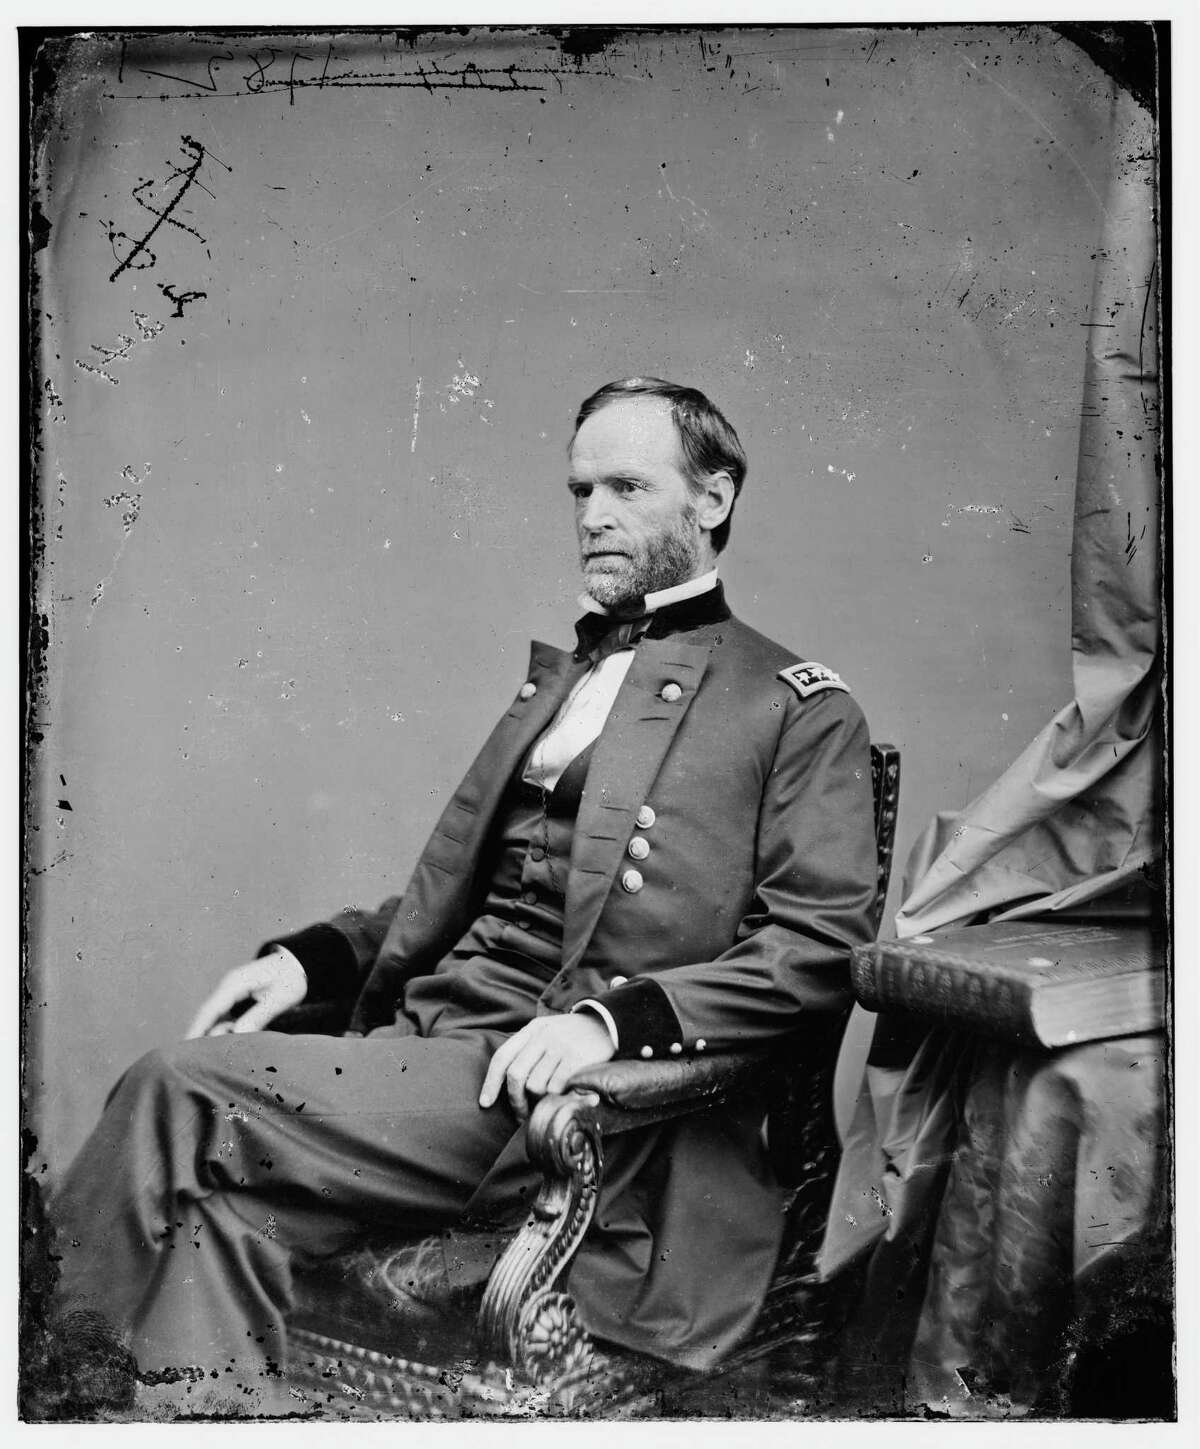 So which Gen. William T. Sherman should we honor - the one (a slaveholder himself) who helped bring the South to its knees with his famous march to the sea, or the one who led what amounted to a war of obliteration on Native Americans so this country could steal their lands?